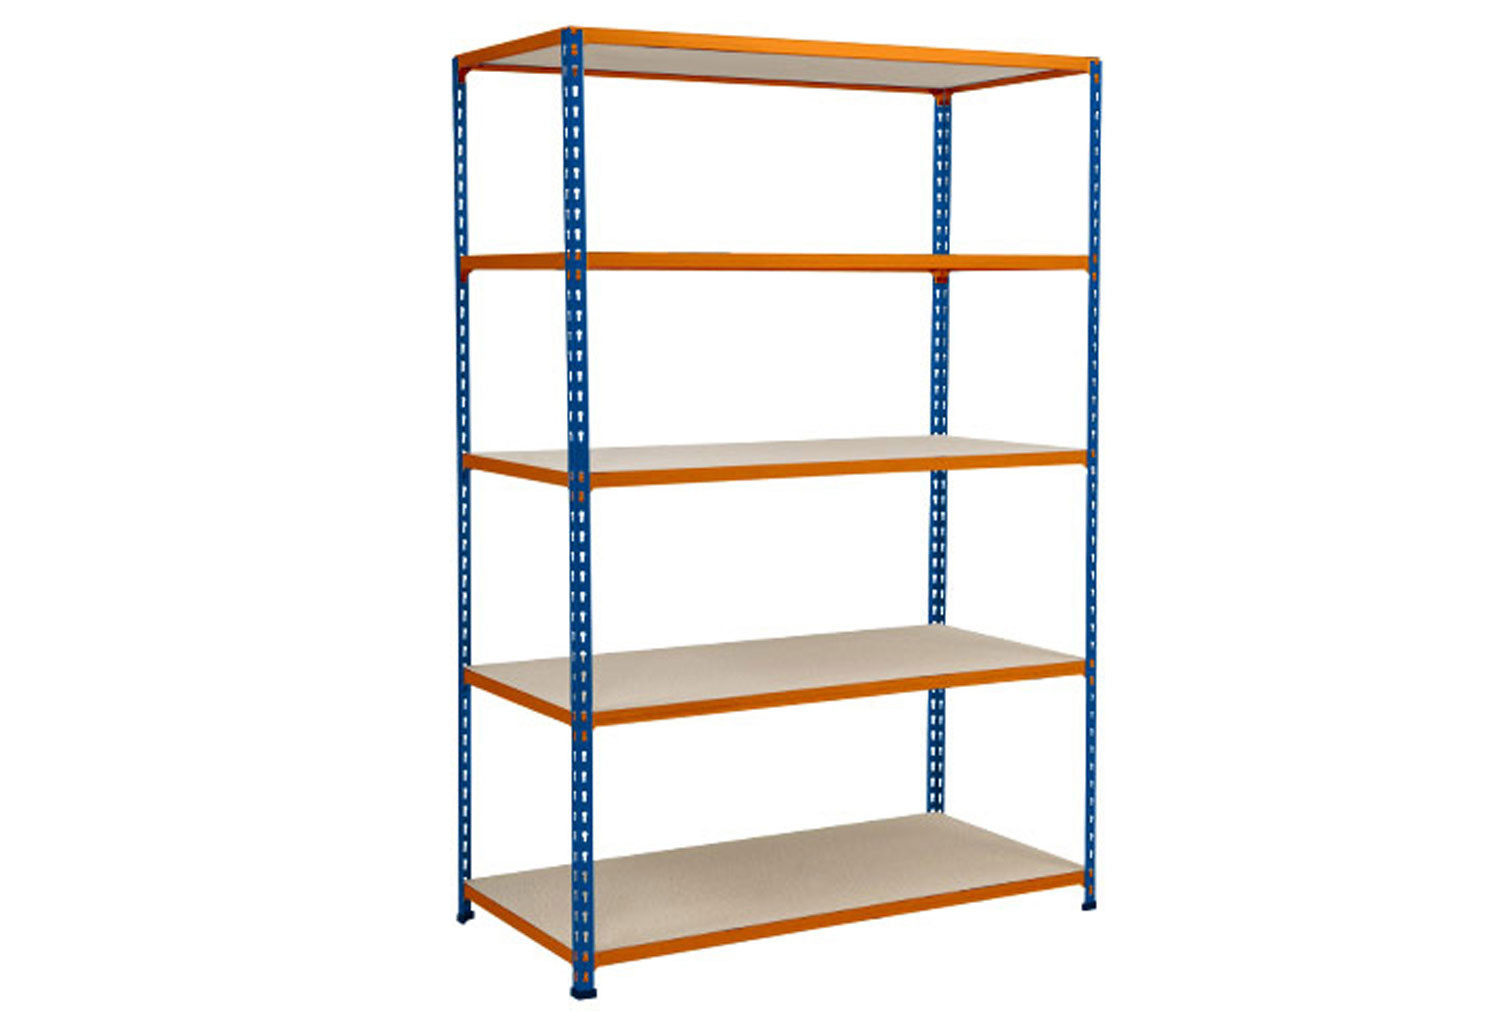 Rapid 2 Shelving With 5 Chipboard Shelves 1220wx2440h (Blue/Orange)